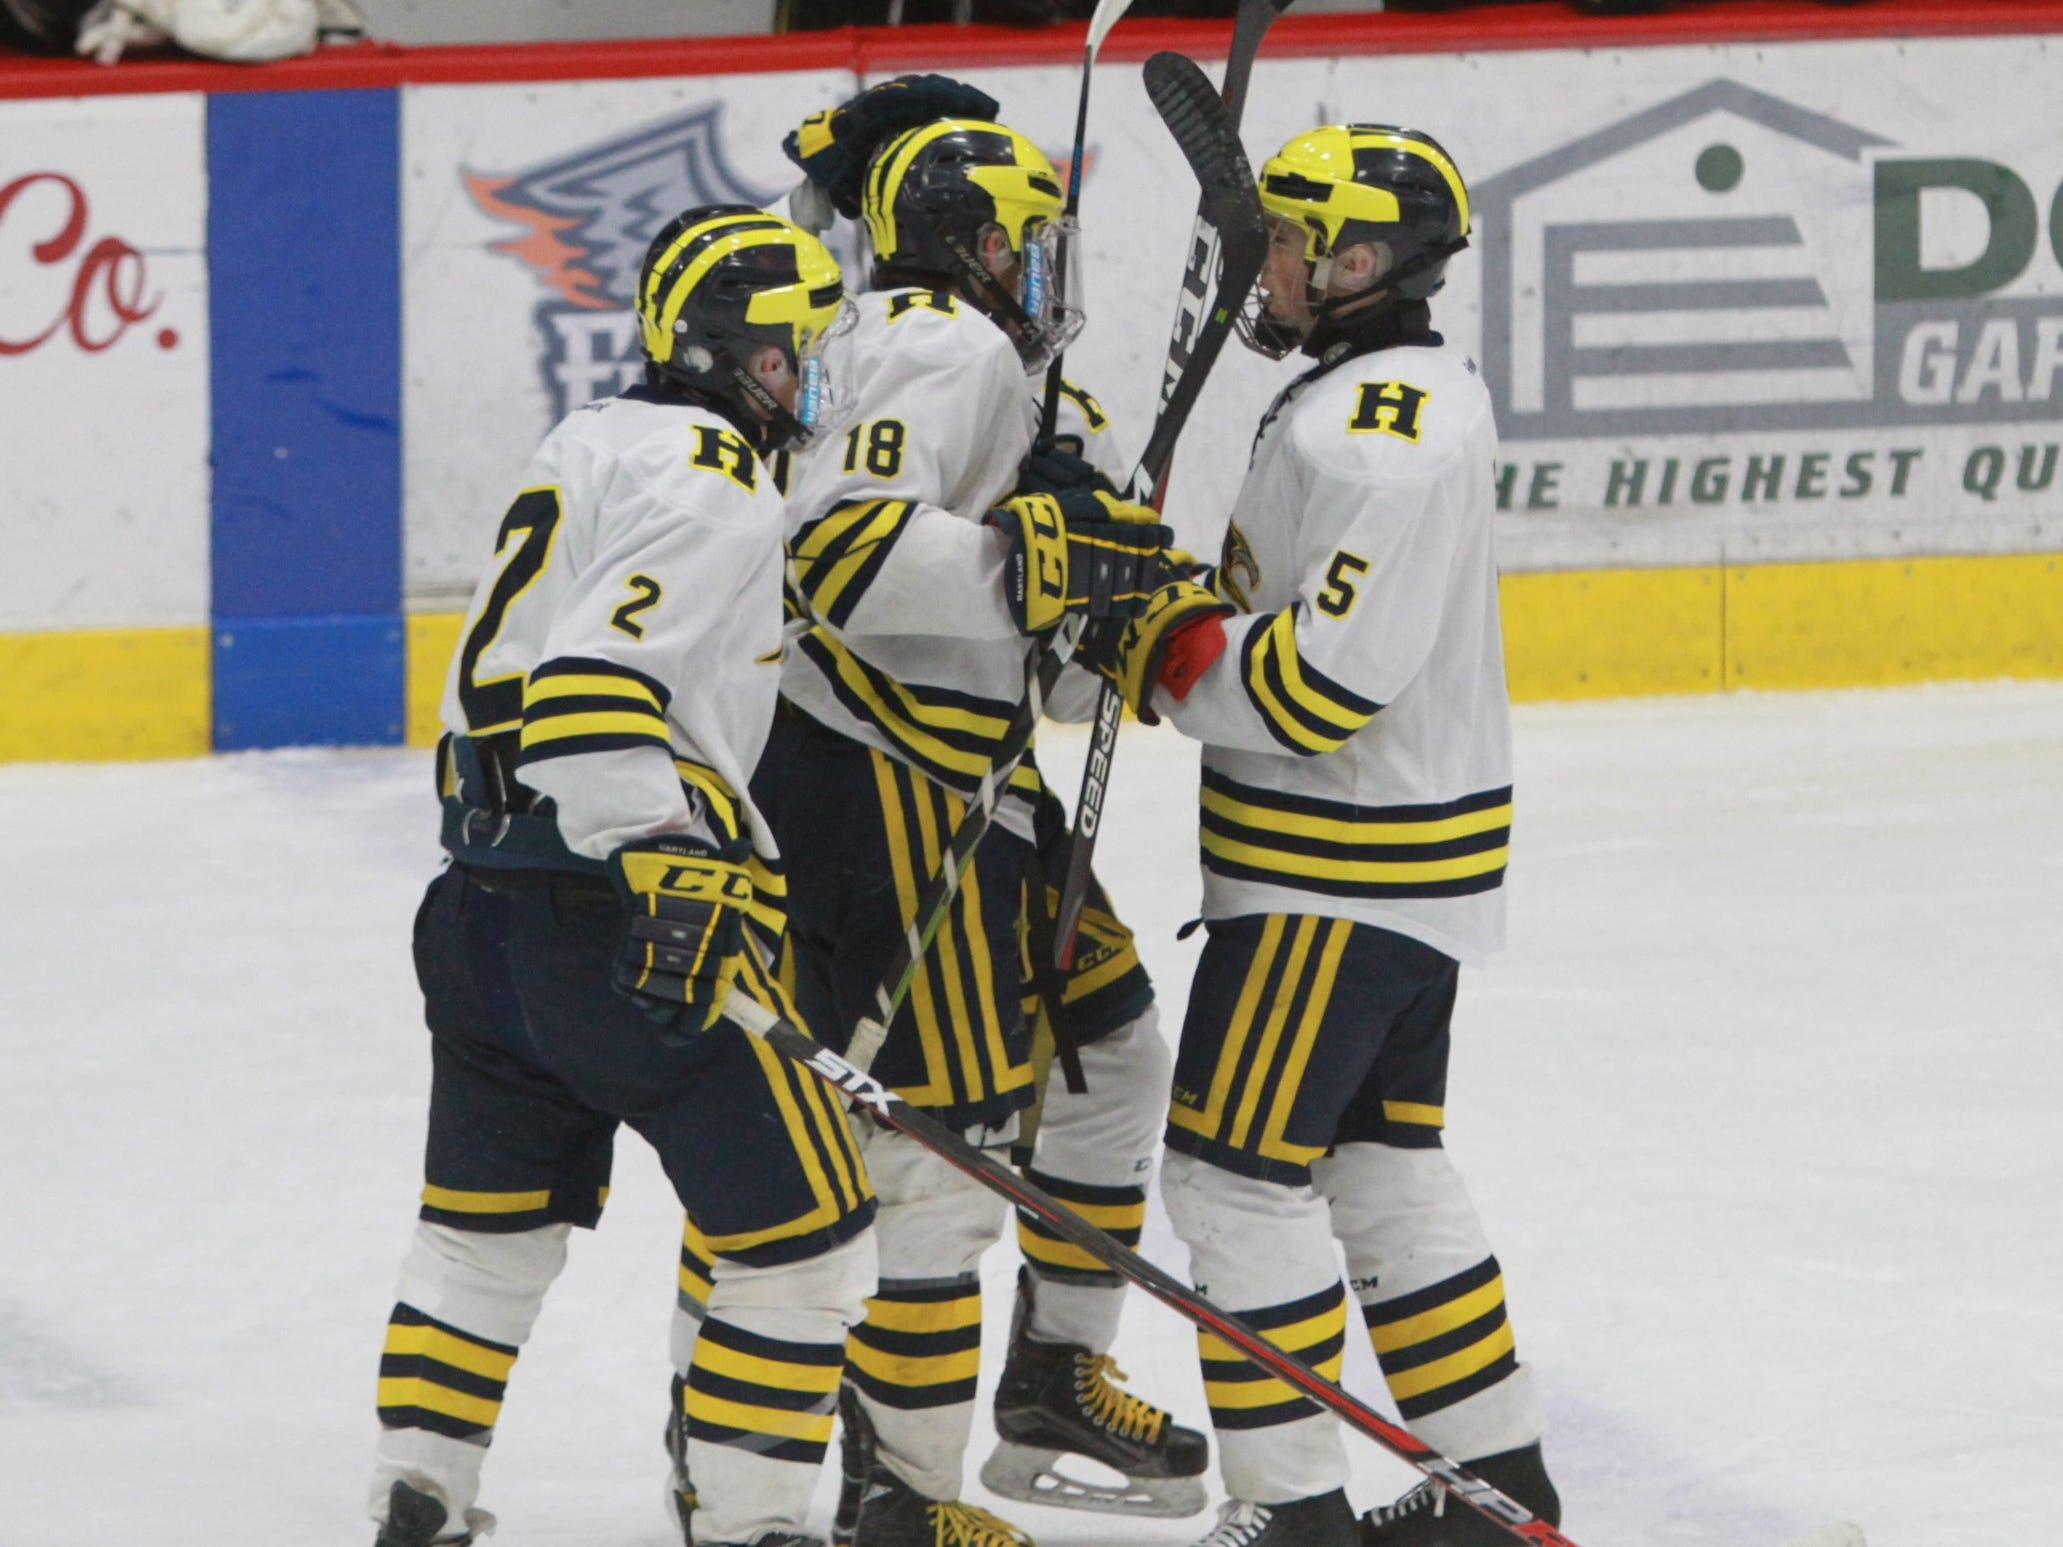 Hartland celebrates the game's first goal by Brenden Tulpa (18) during a 6-0 victory over Forest Hills Eastern in the state Division 2 hockey quarterfinals in Flint on Tuesday, March 5, 2019.